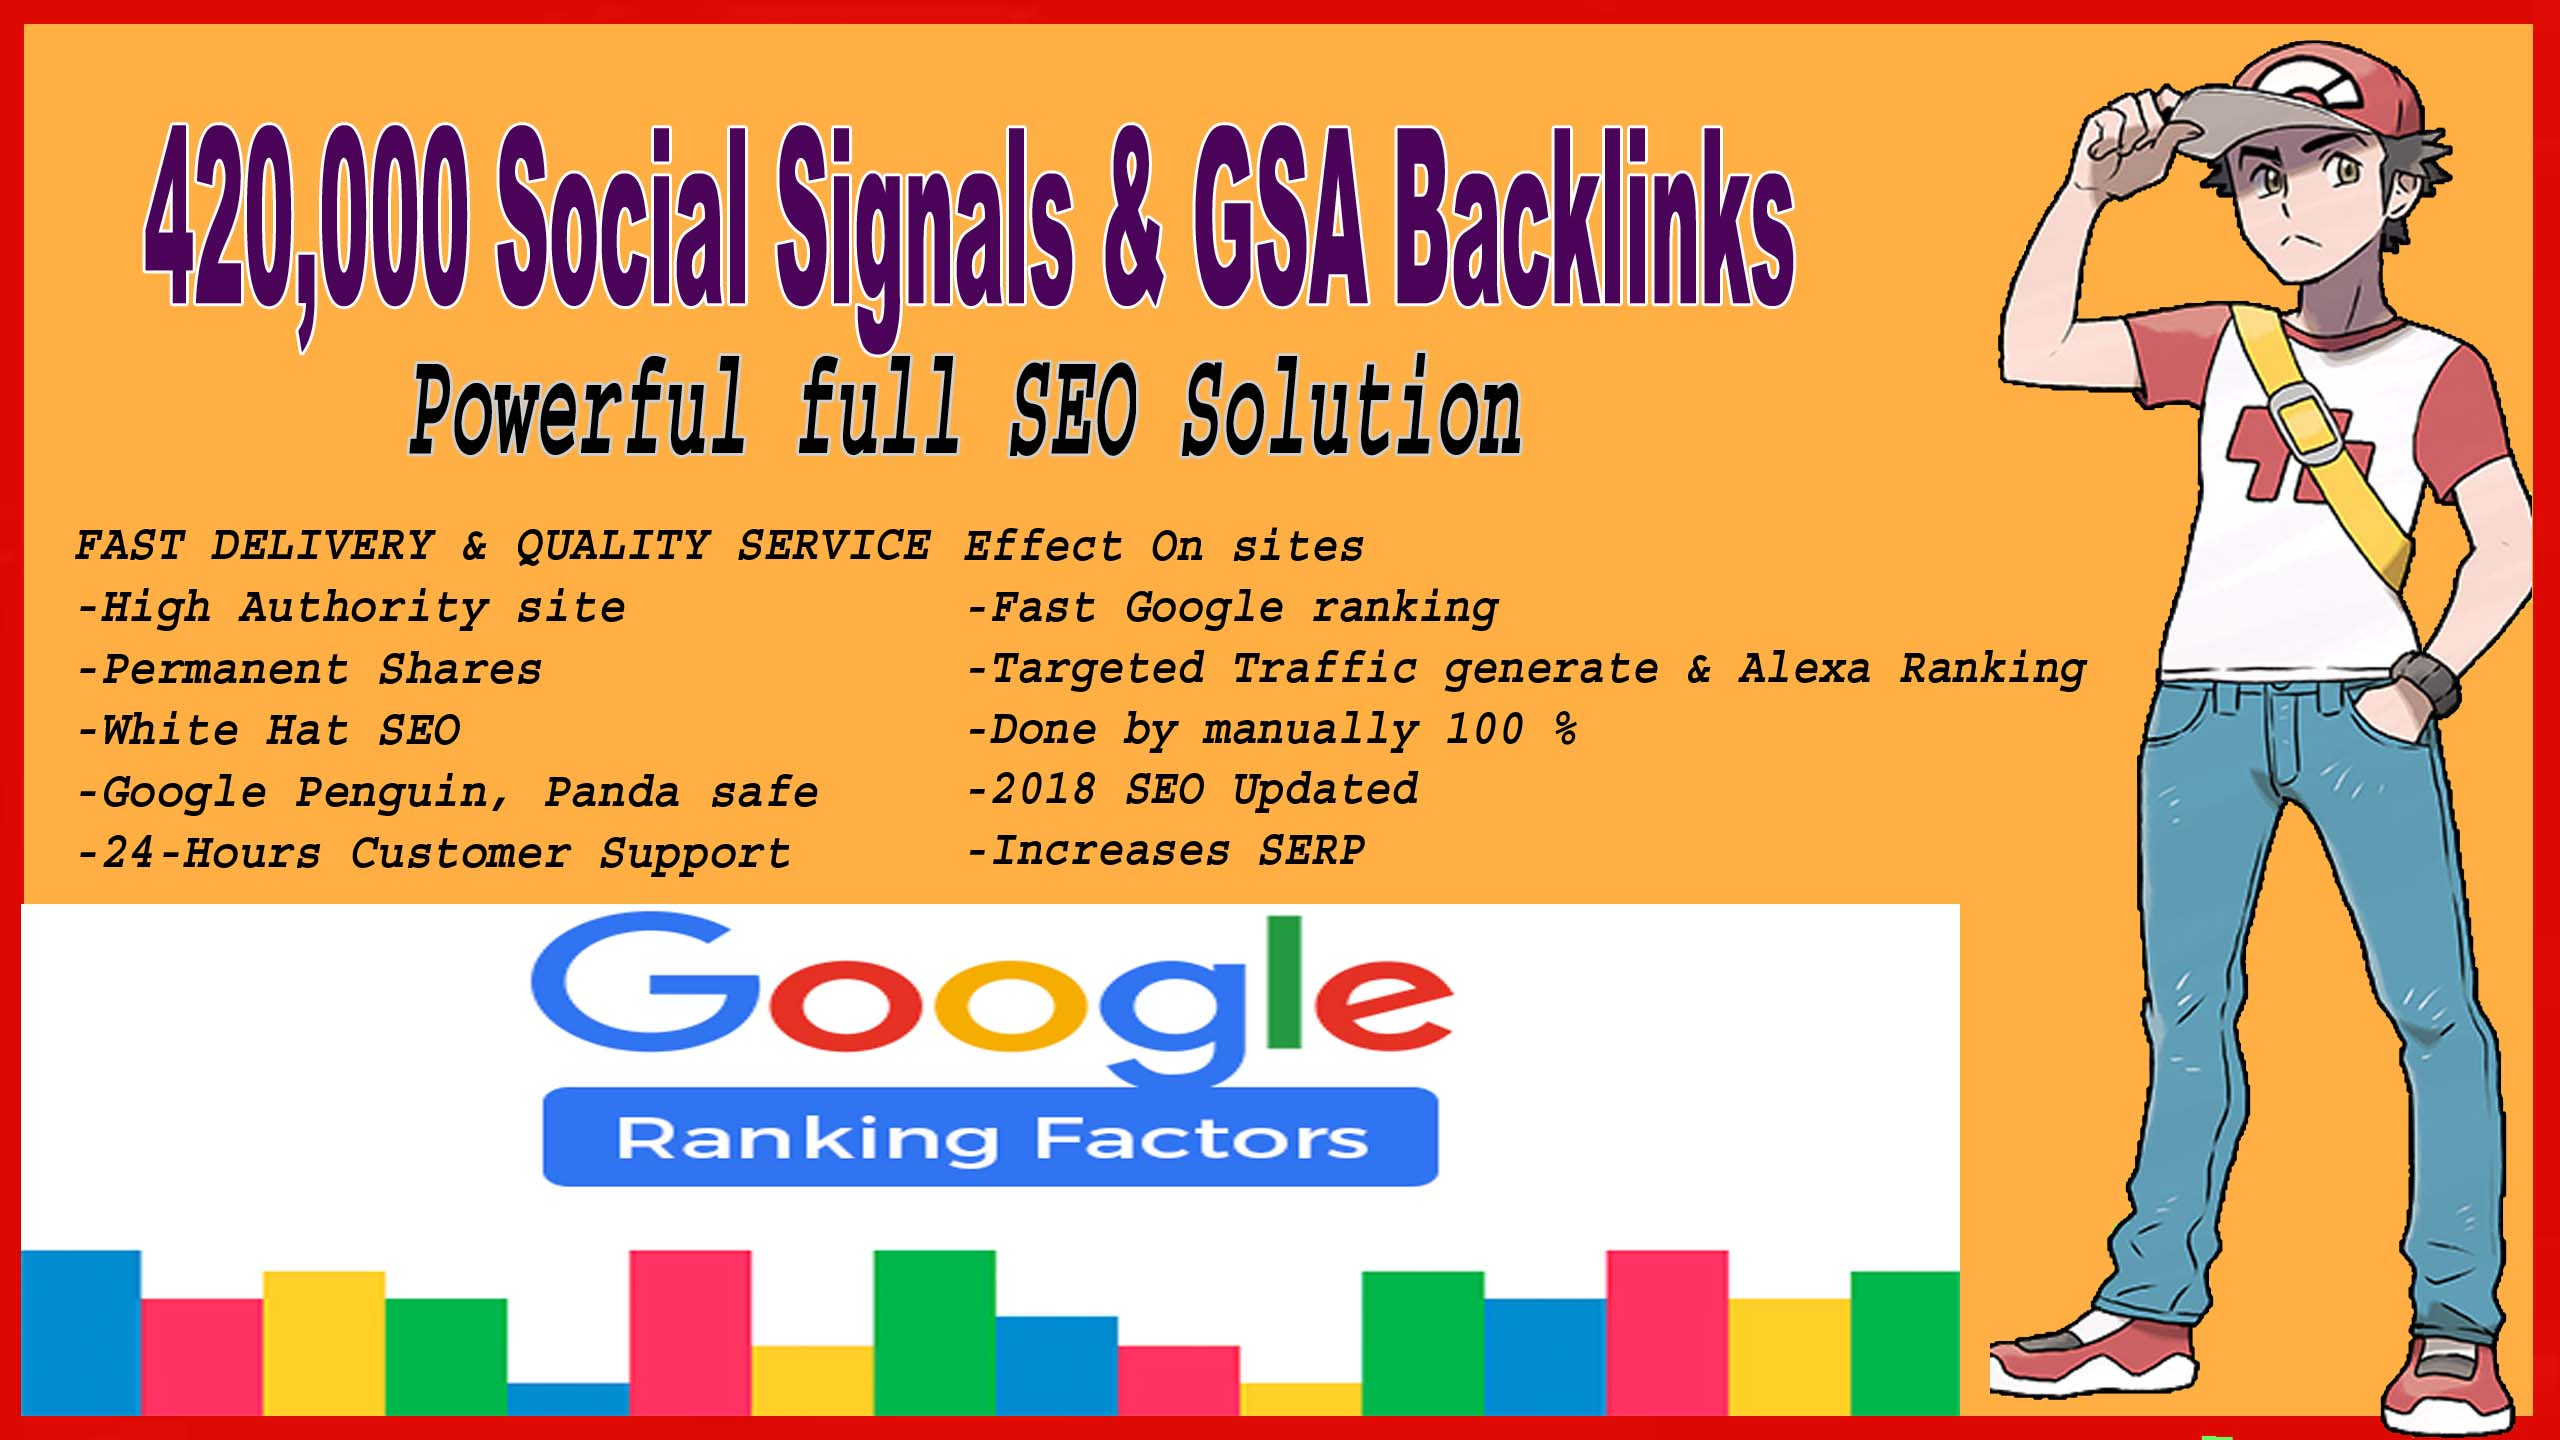 Build 420,000 Social Signals Powerful full SEO Solution with gsa backlinks